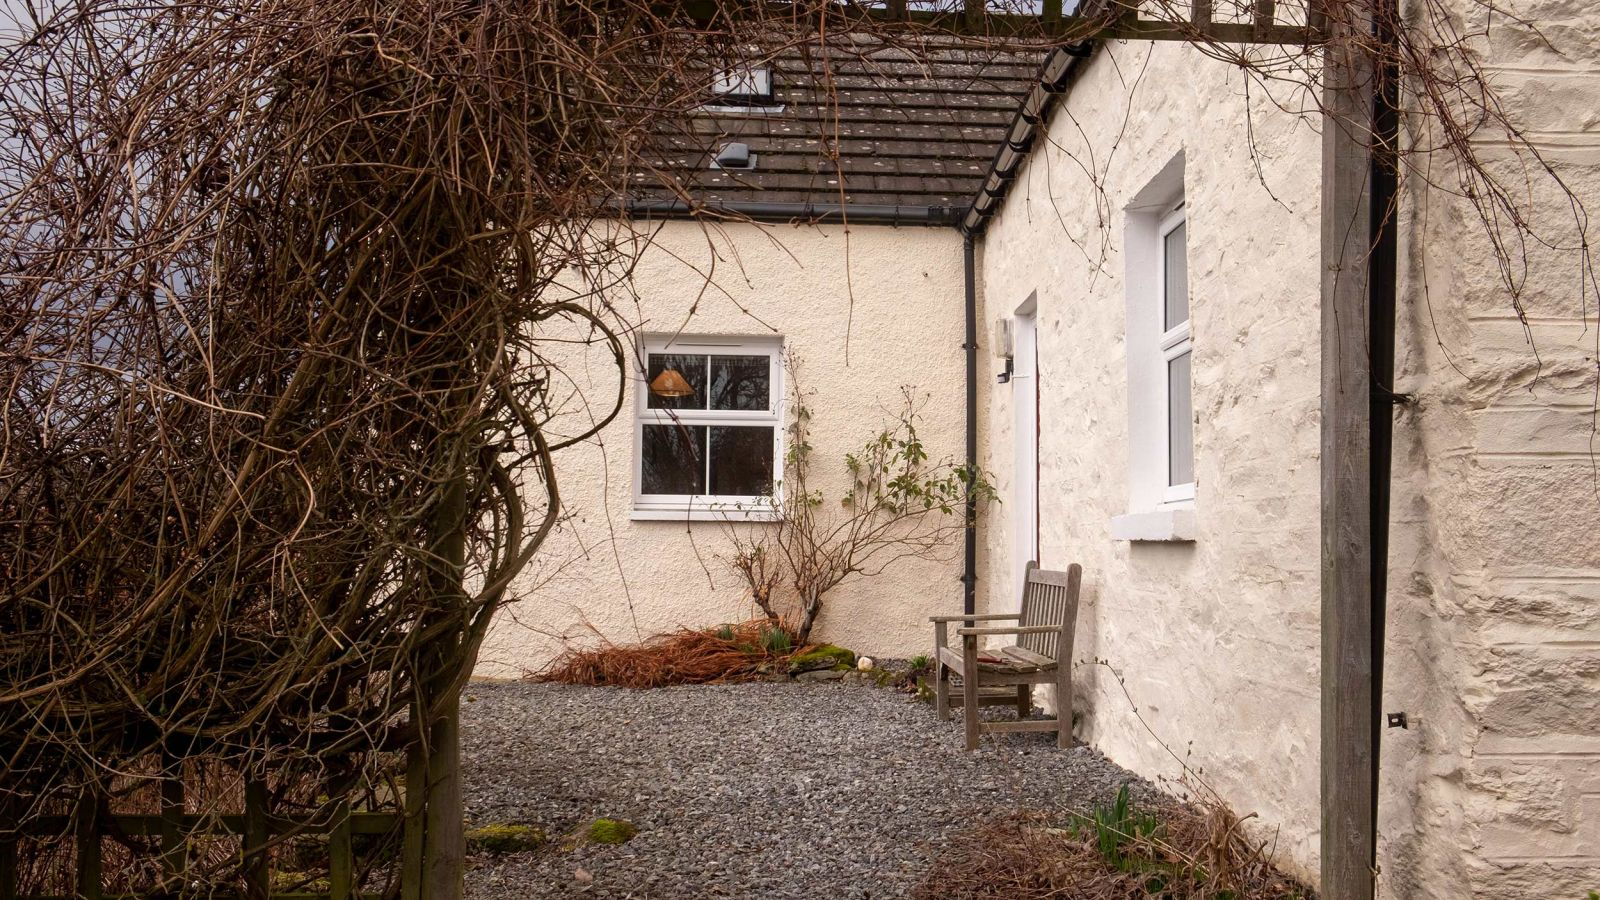 Blairchroisk Cottage in the heart of Highland Perthshire